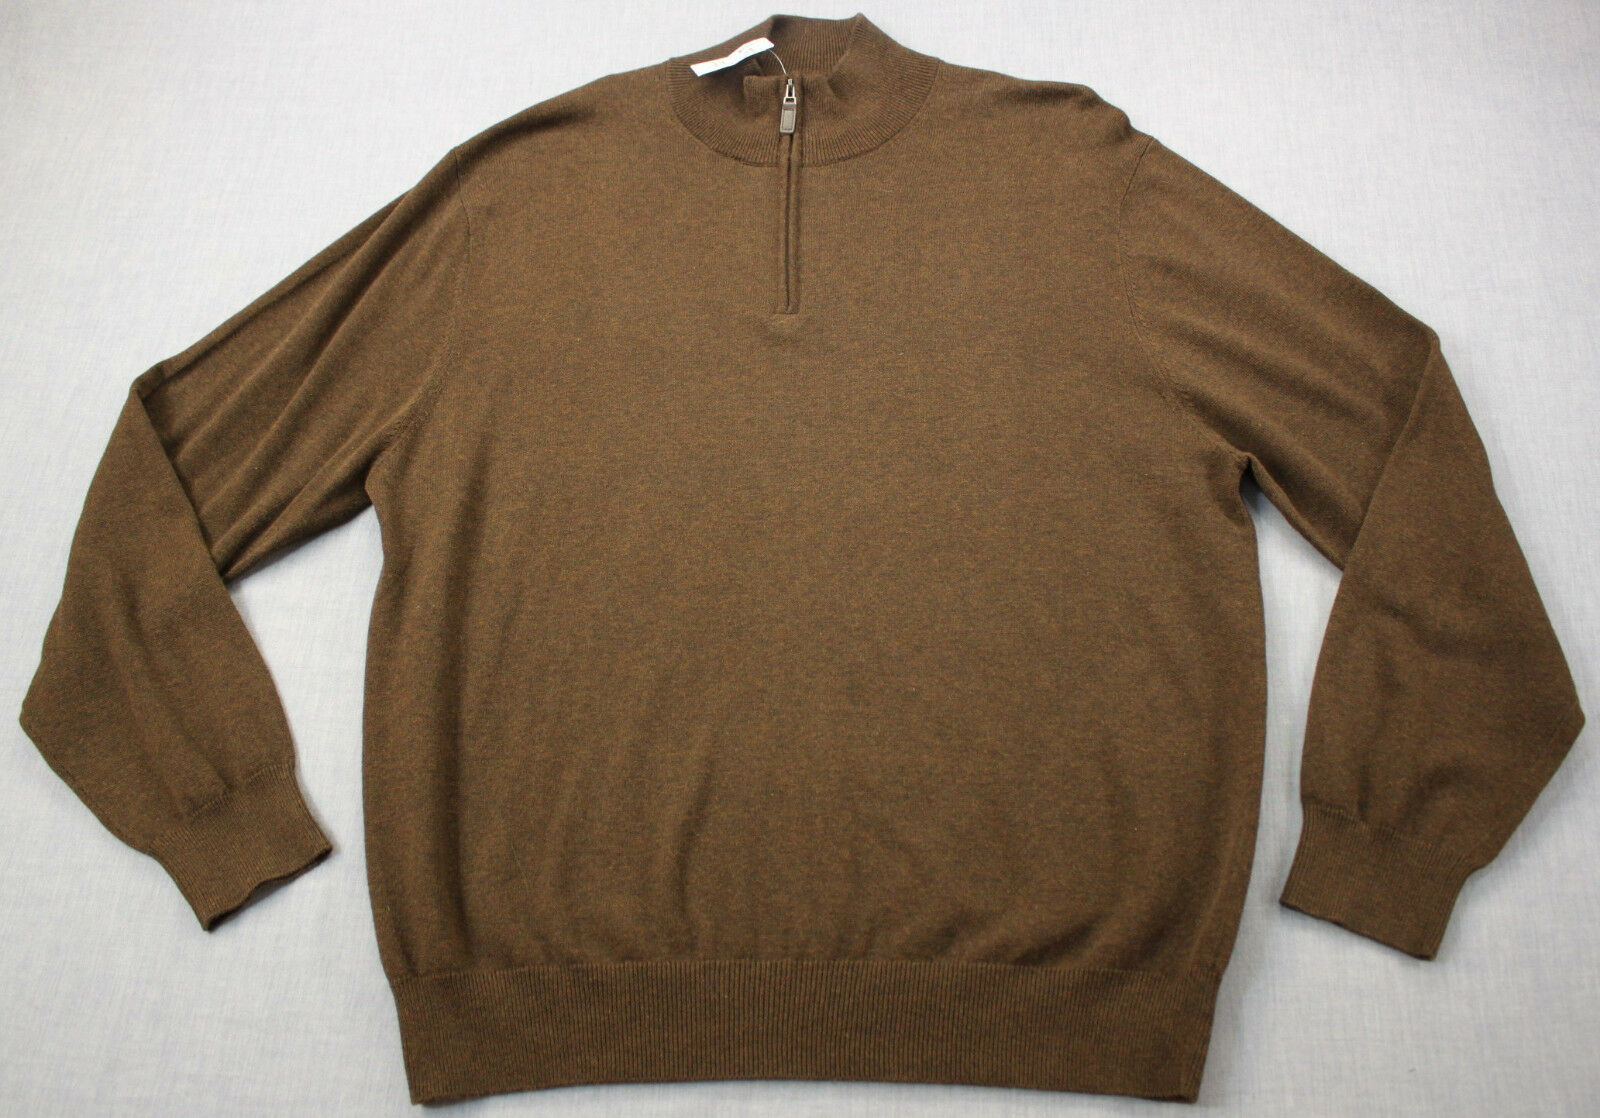 Jos A Bank Signature Collection  Herren Braun Pima Cotton Half Zip Sweater  NWT  L